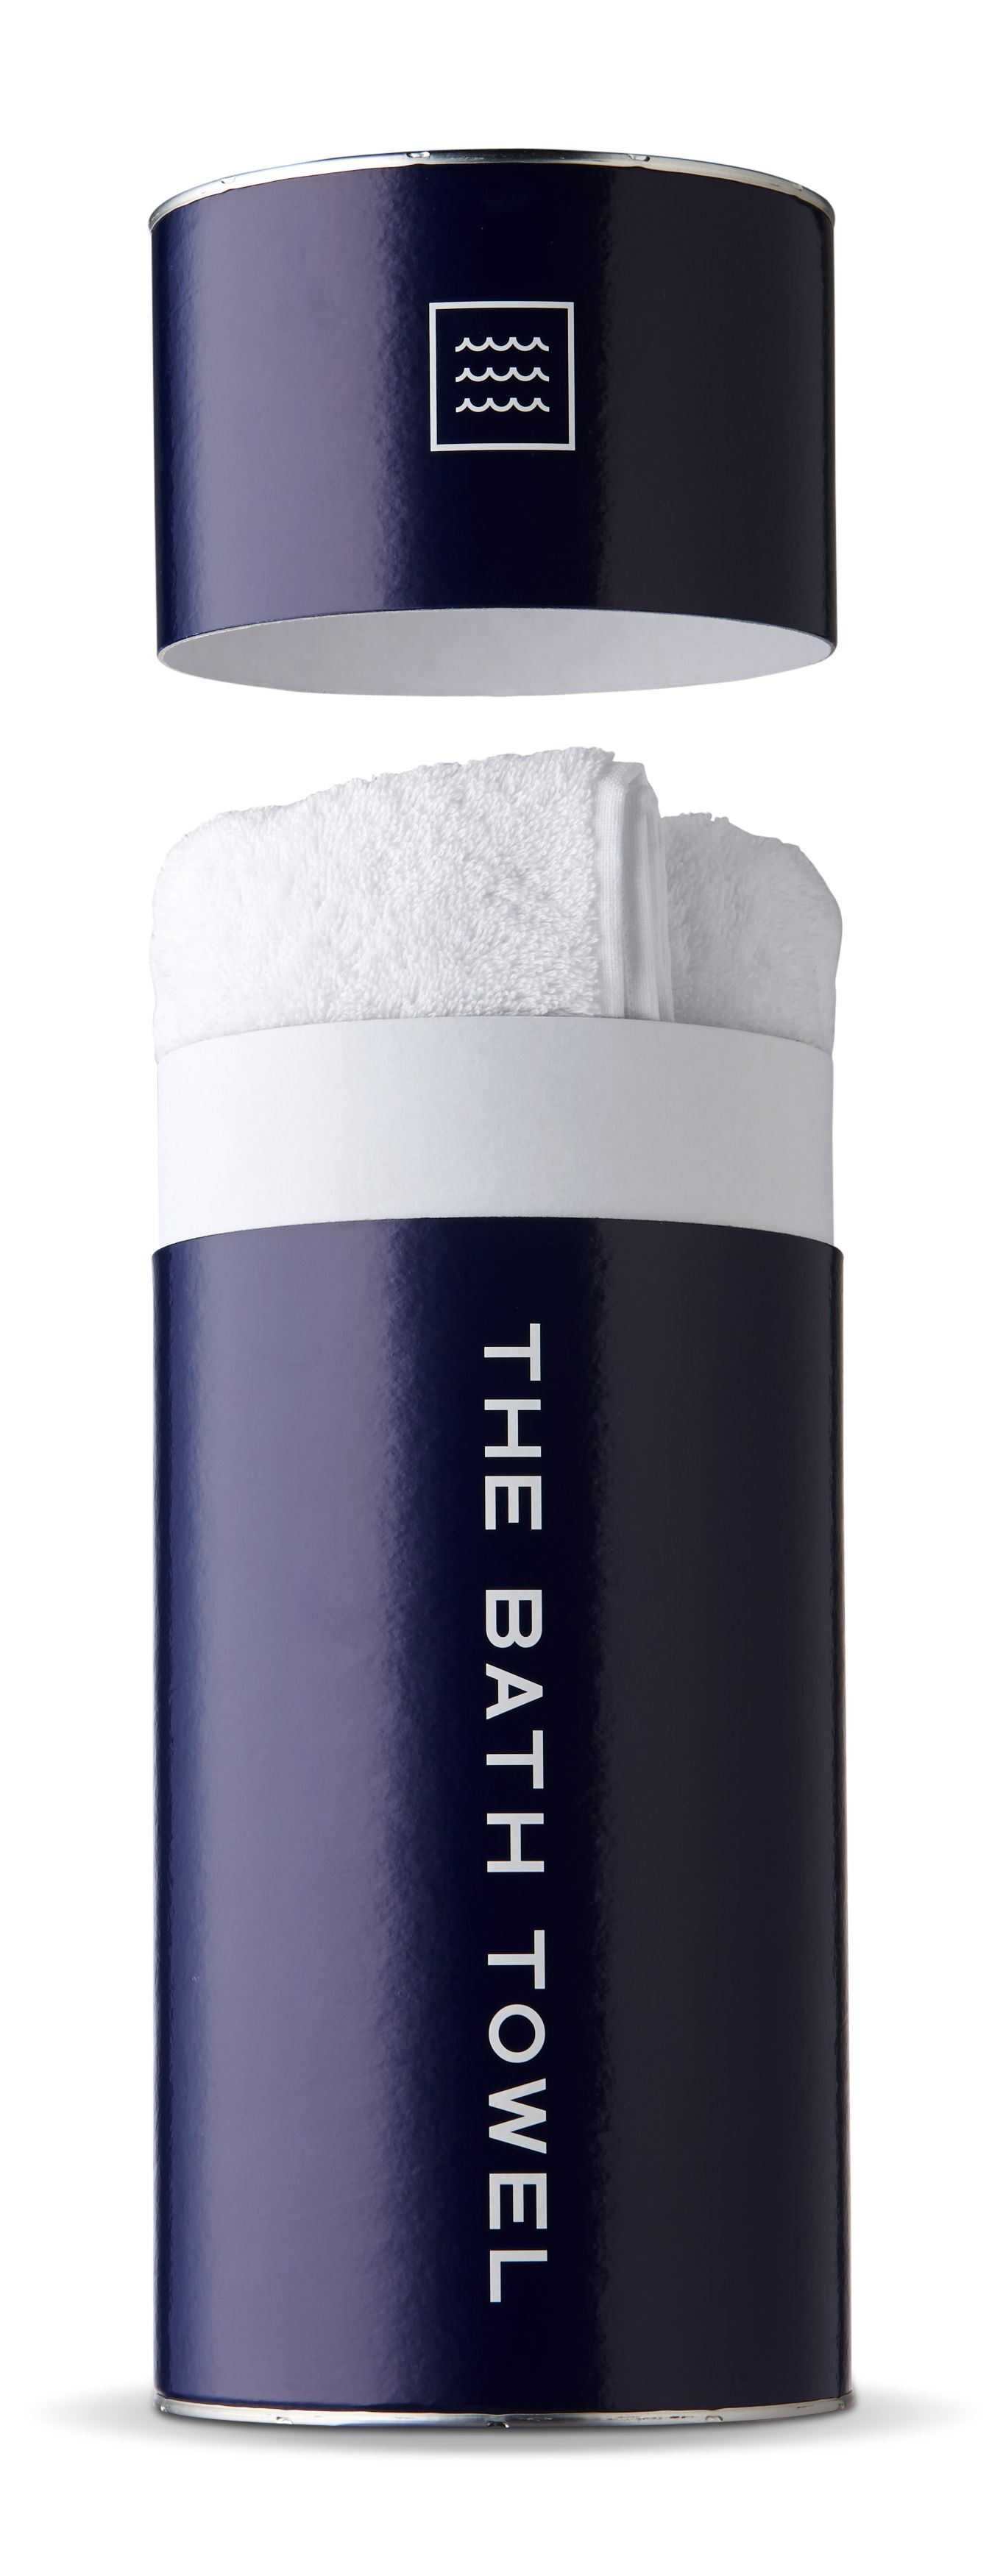 The Bath Towel Tube by Cottera #keepondrying